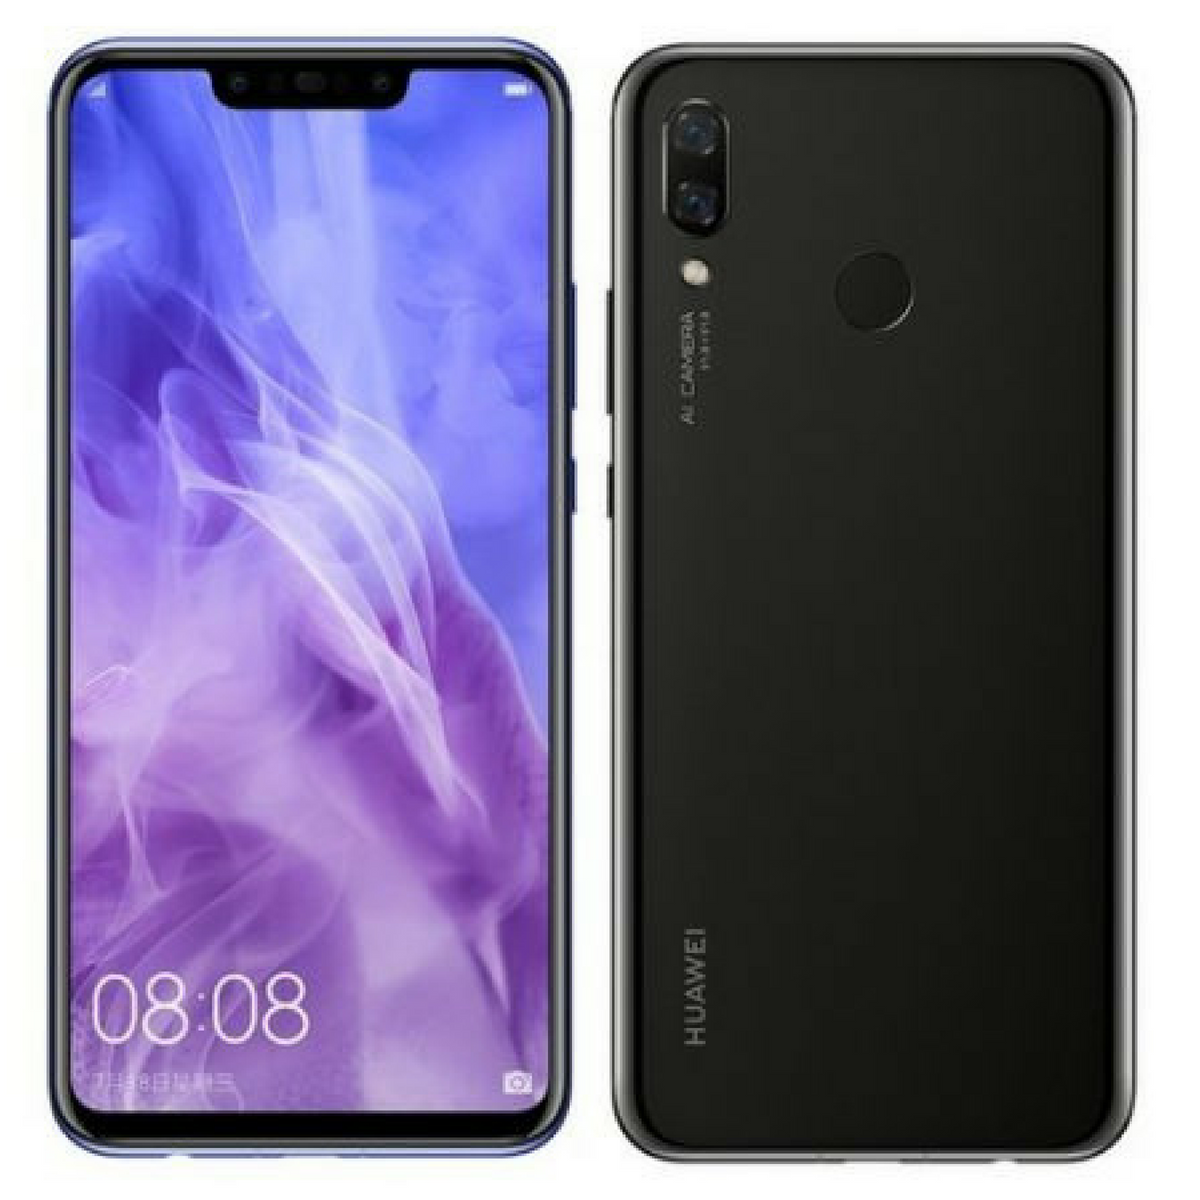 Huawei Nova 3i Spotted On Weibo Likely To Launch On 18th July In China Huawei Product Launch Zombie Vehicle